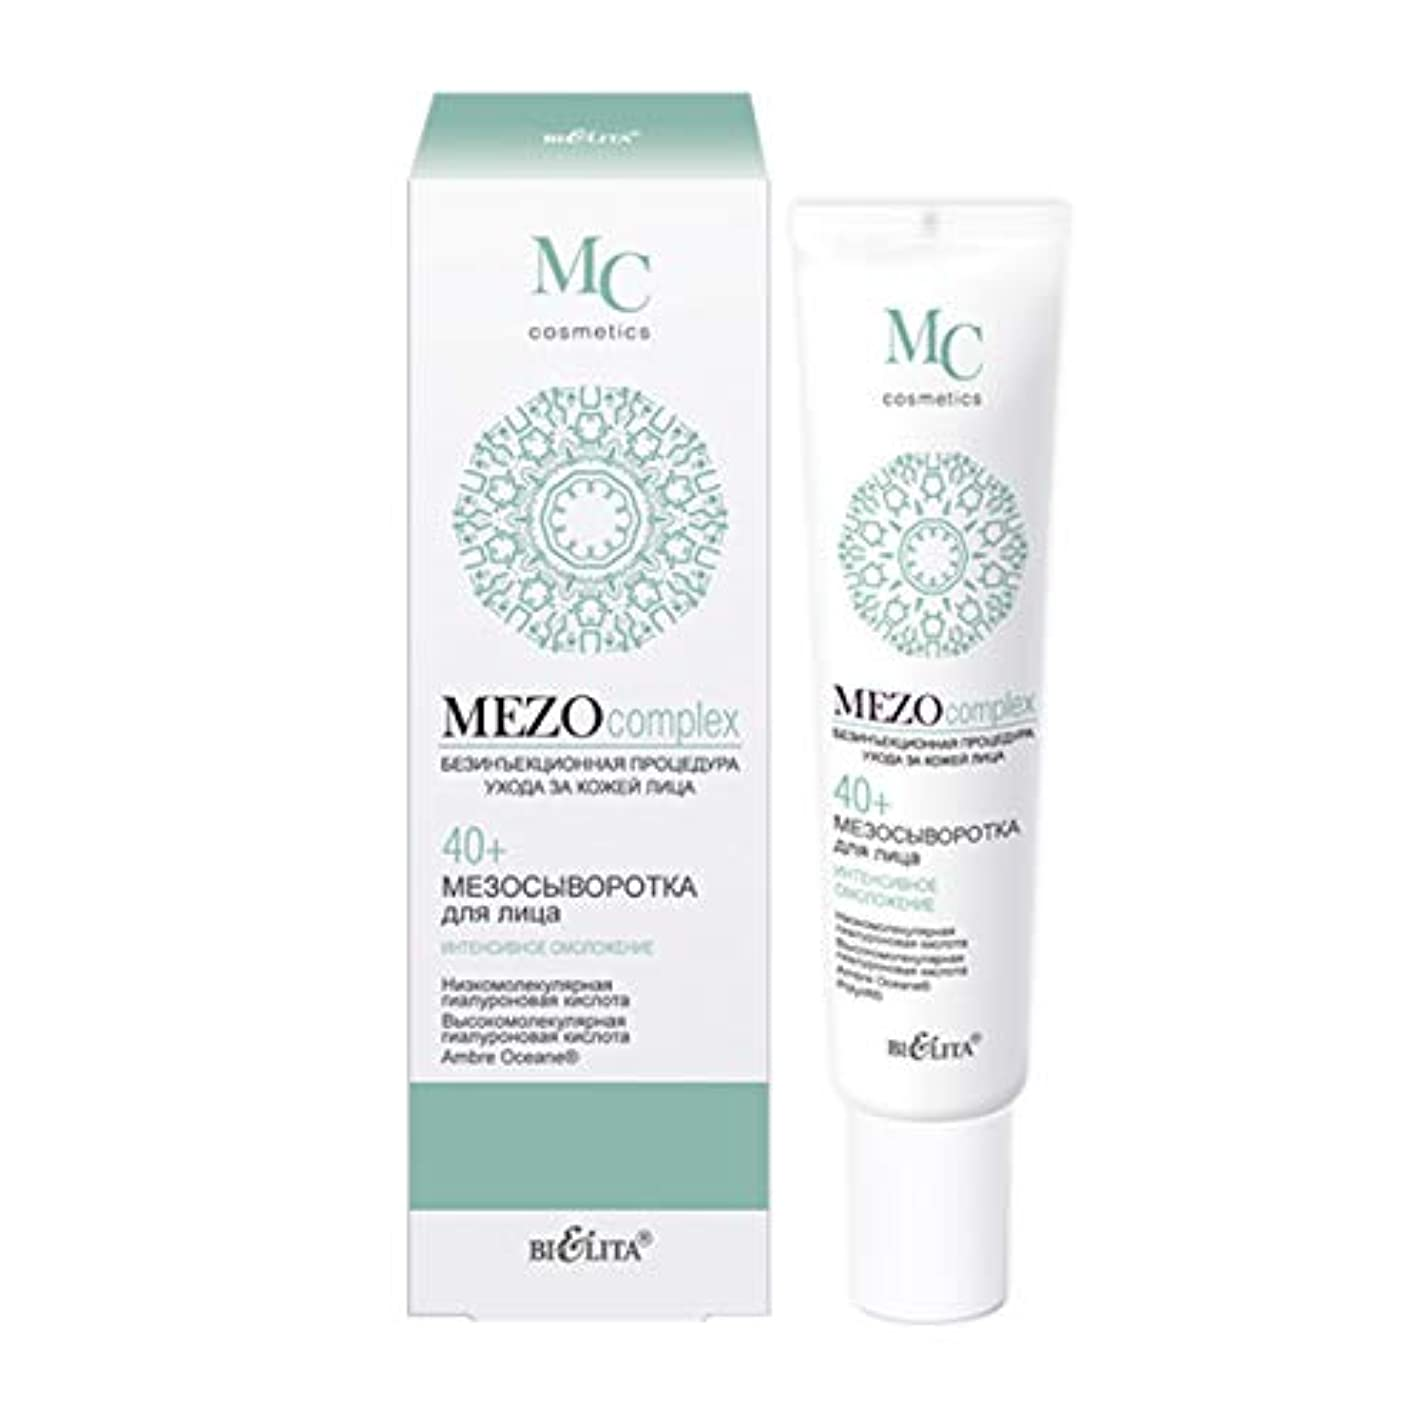 農民見習い式Mezo complex Serum Intensive Rejuvenation 40+ | Non-injection facial skin care procedure | Ambre Oceane | Polylift...